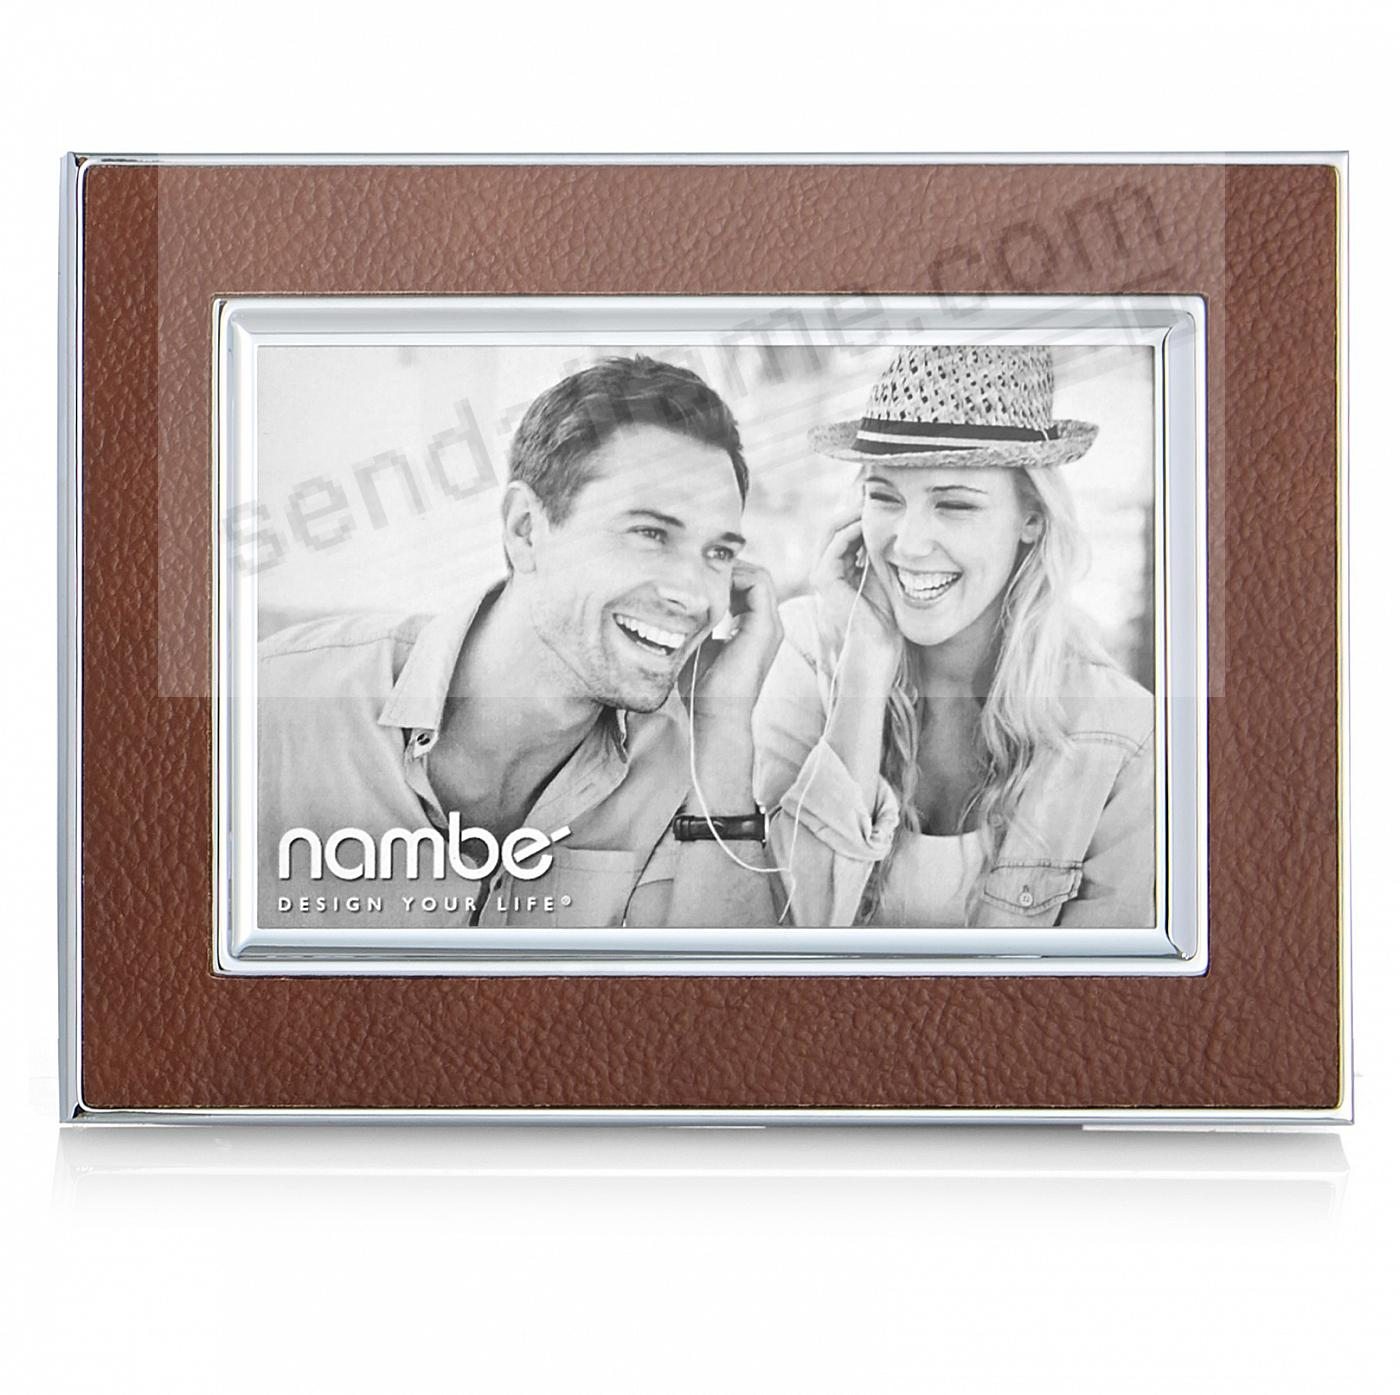 The NOVARA 4x6 frame by Nambe